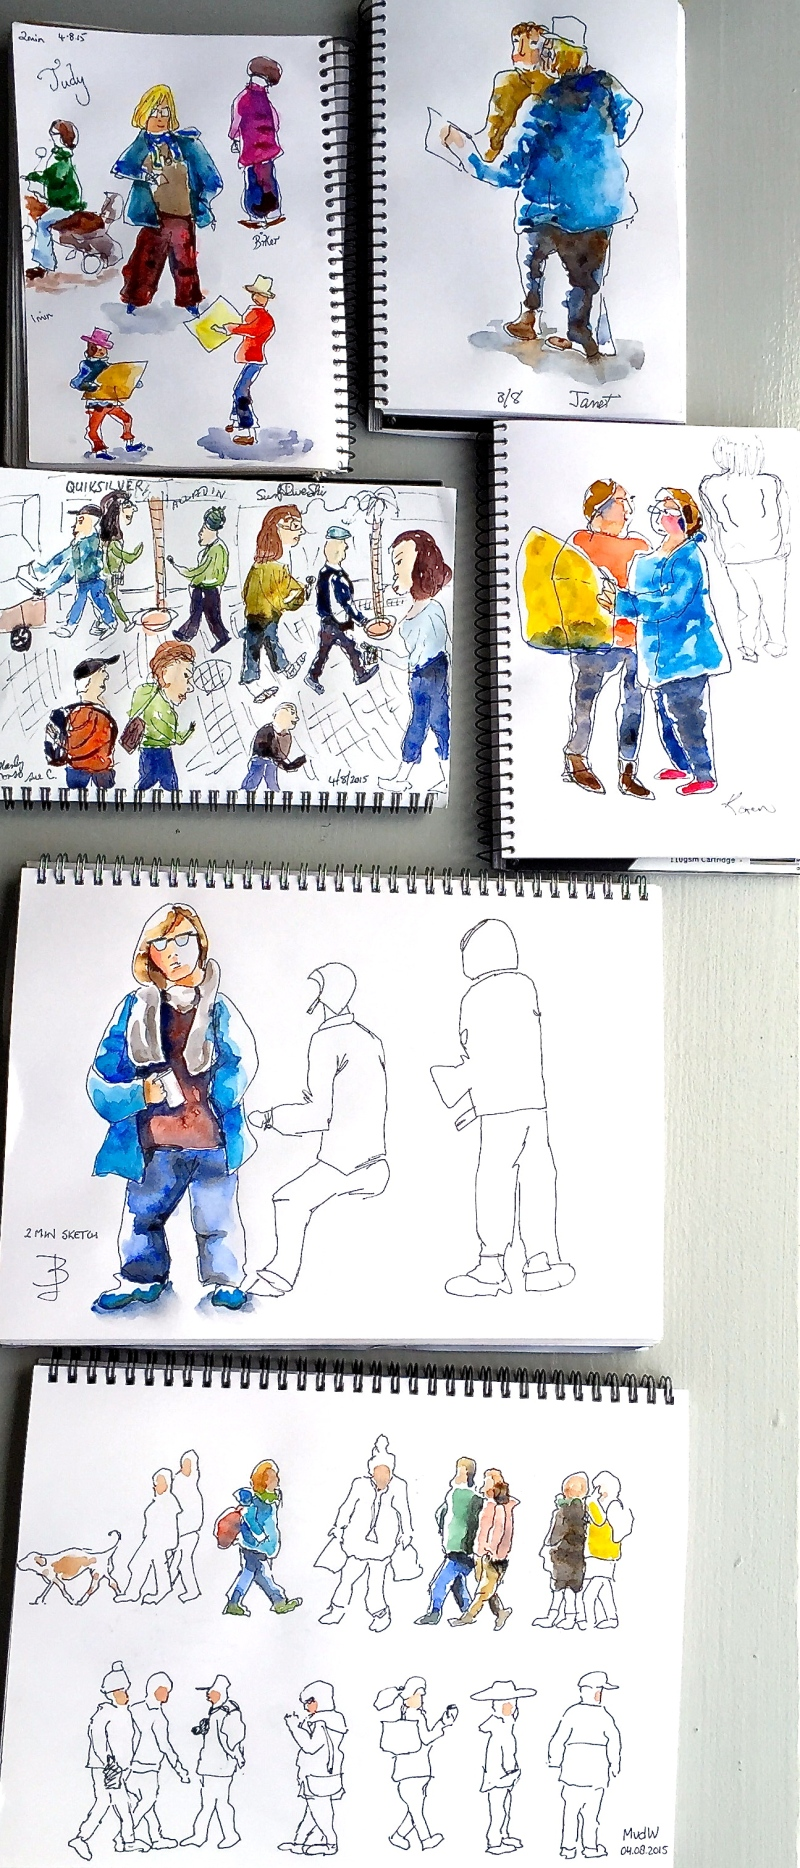 Tuesday. Figures & watercolour